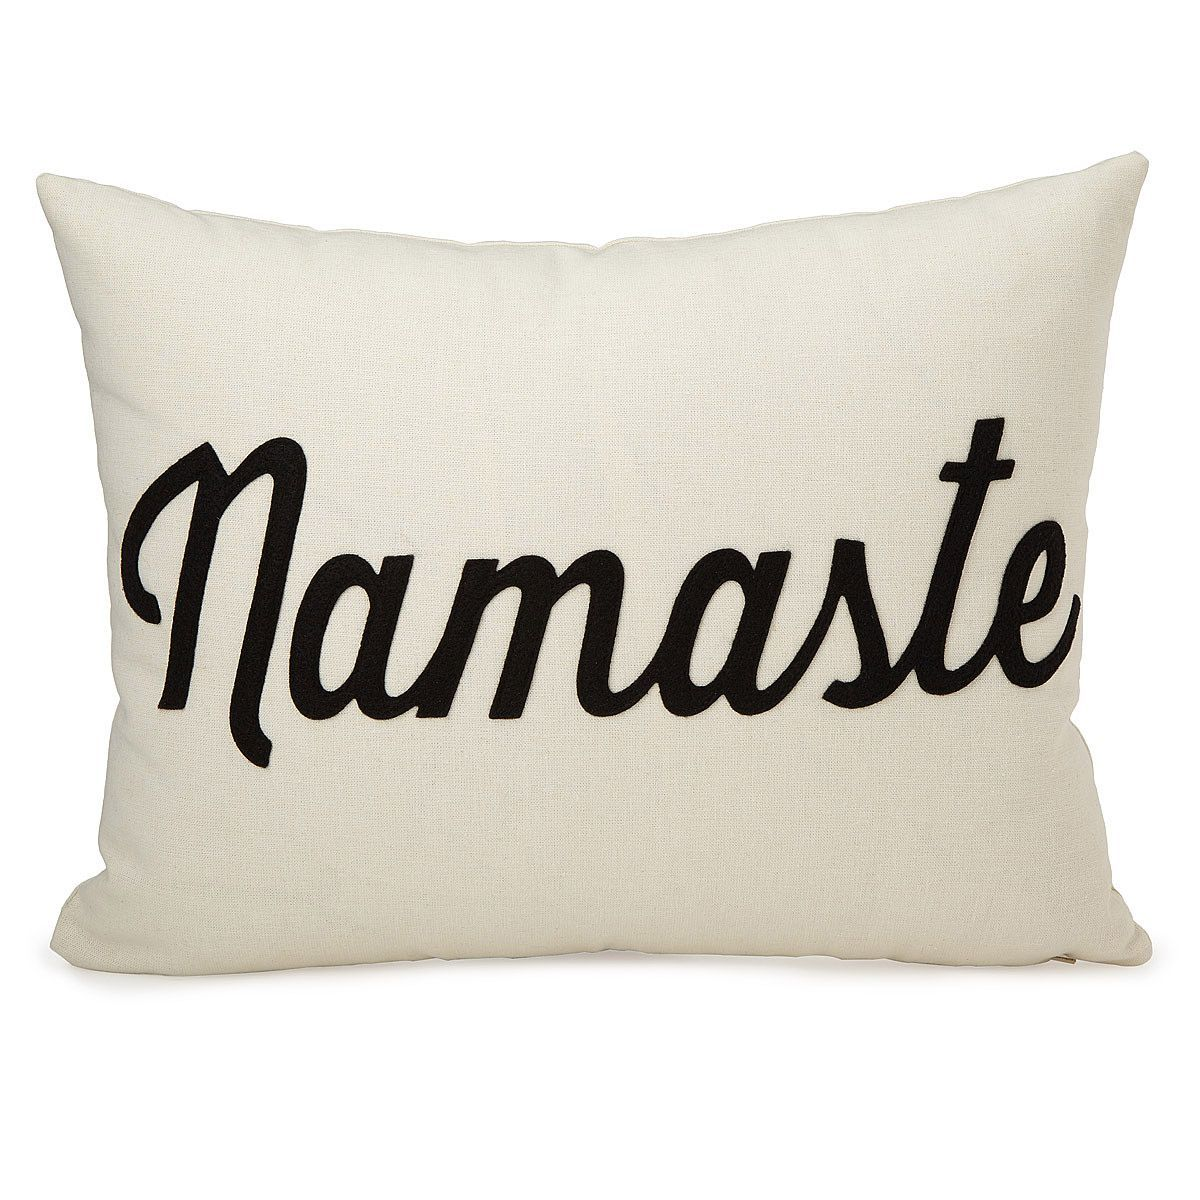 Namaste pillow namaste pillows and products